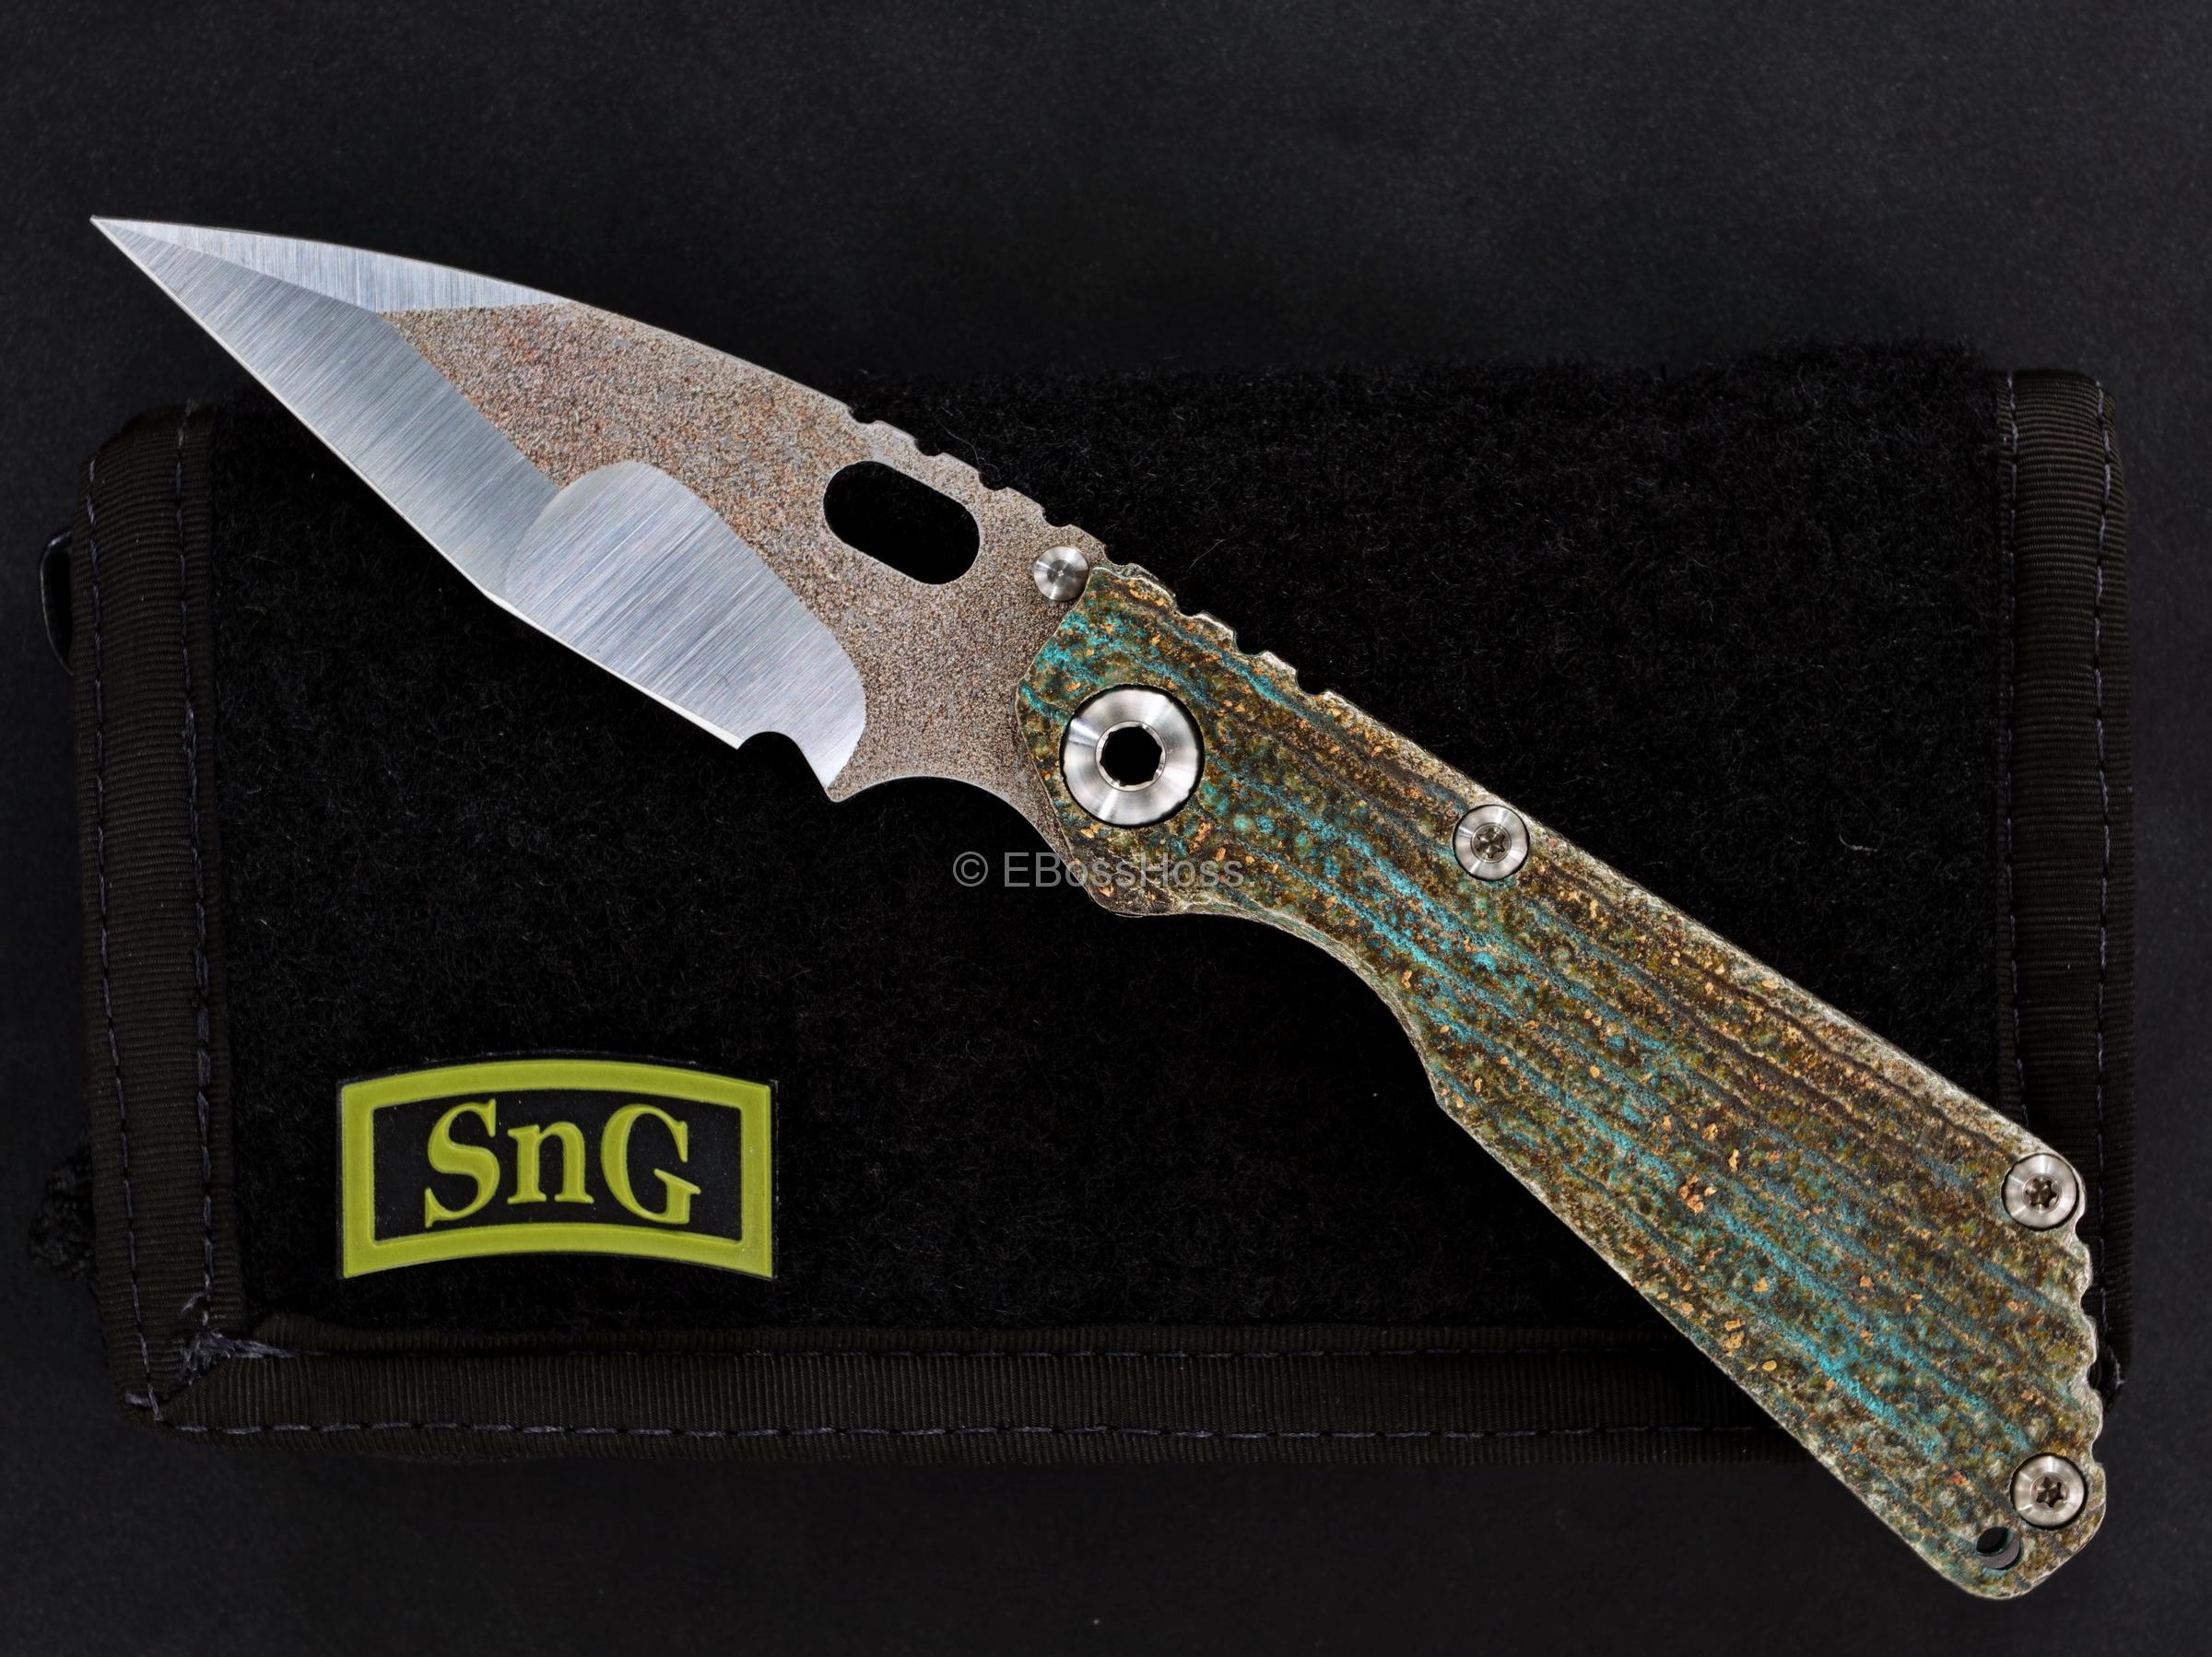 Mick Strider Custom (MSC) Groot Nightmare SnG